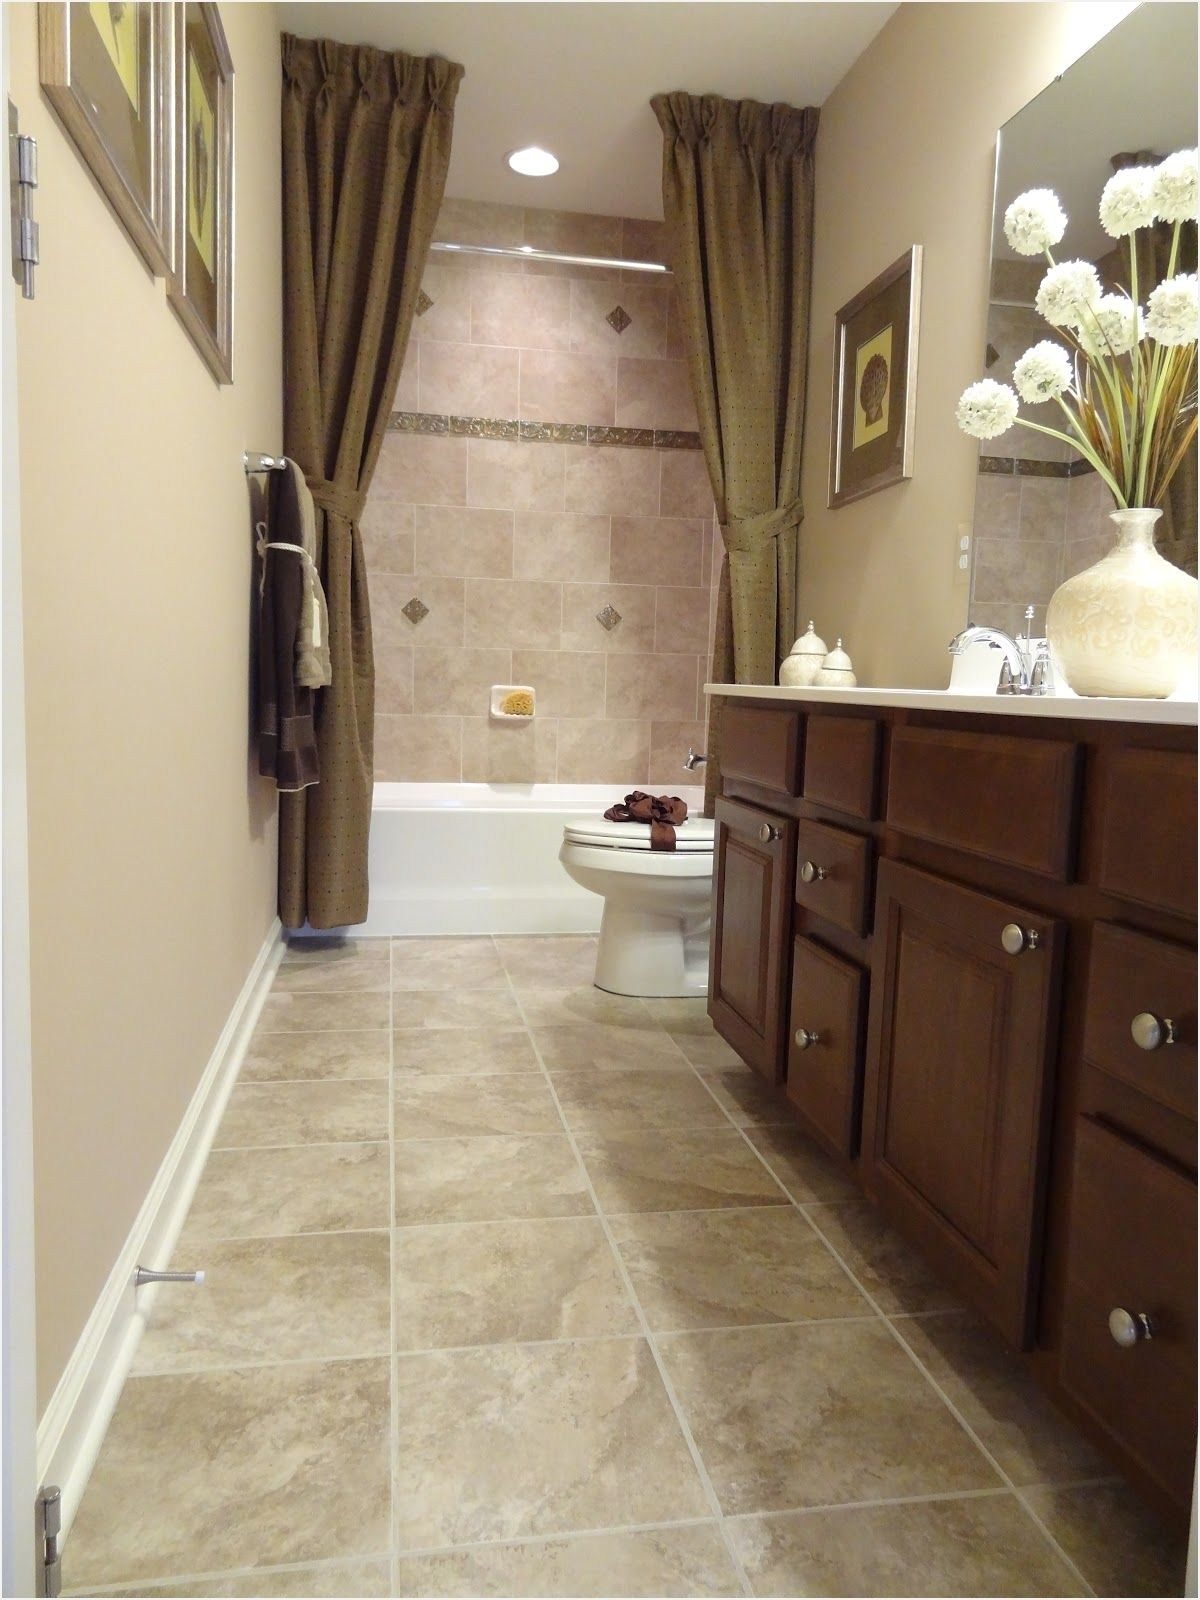 41 Awesome Small Full Bathroom Remodel Ideas With Images Full Bathroom Remodel Long Narrow Bathroom Small Narrow Bathroom